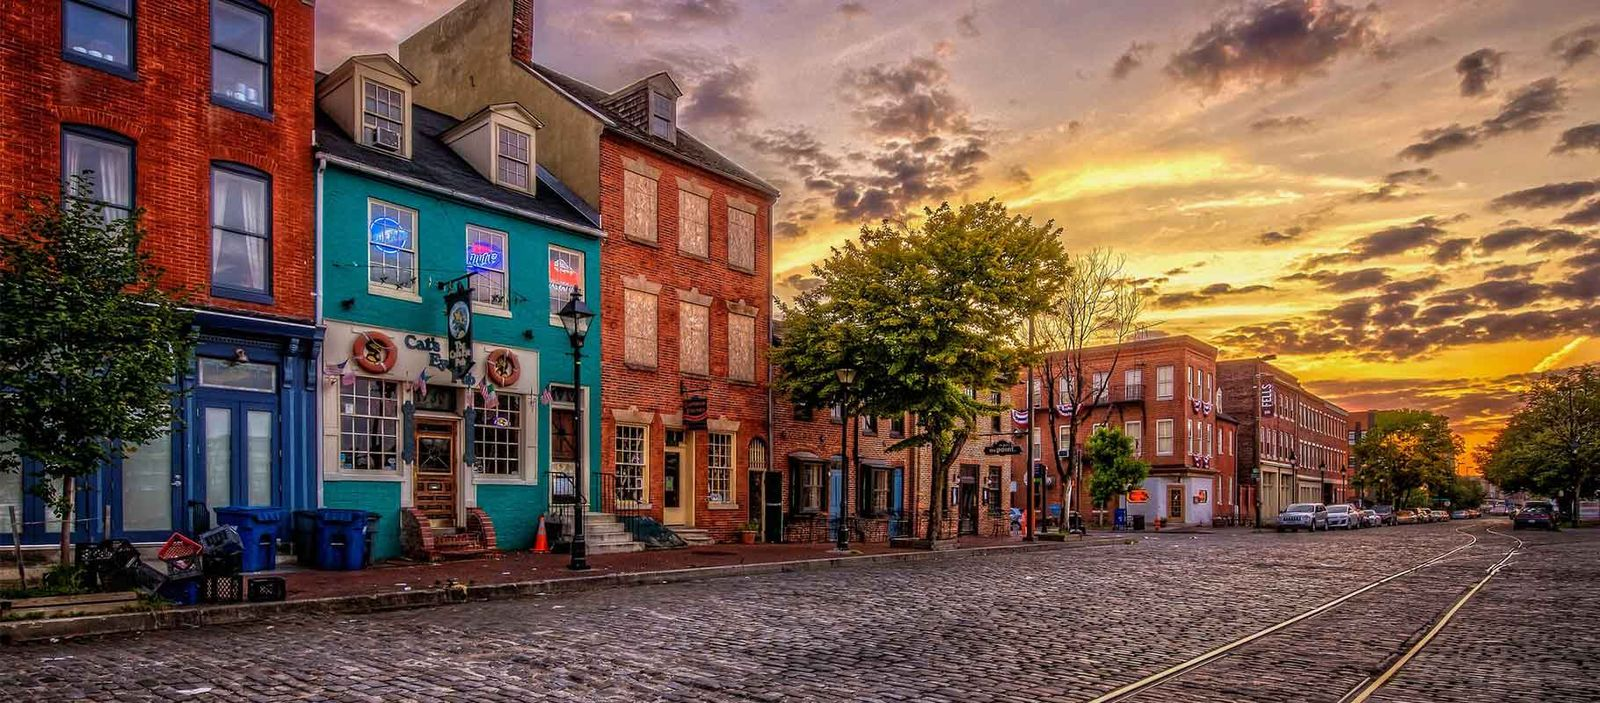 Cobblestone road and houses in Fells Point